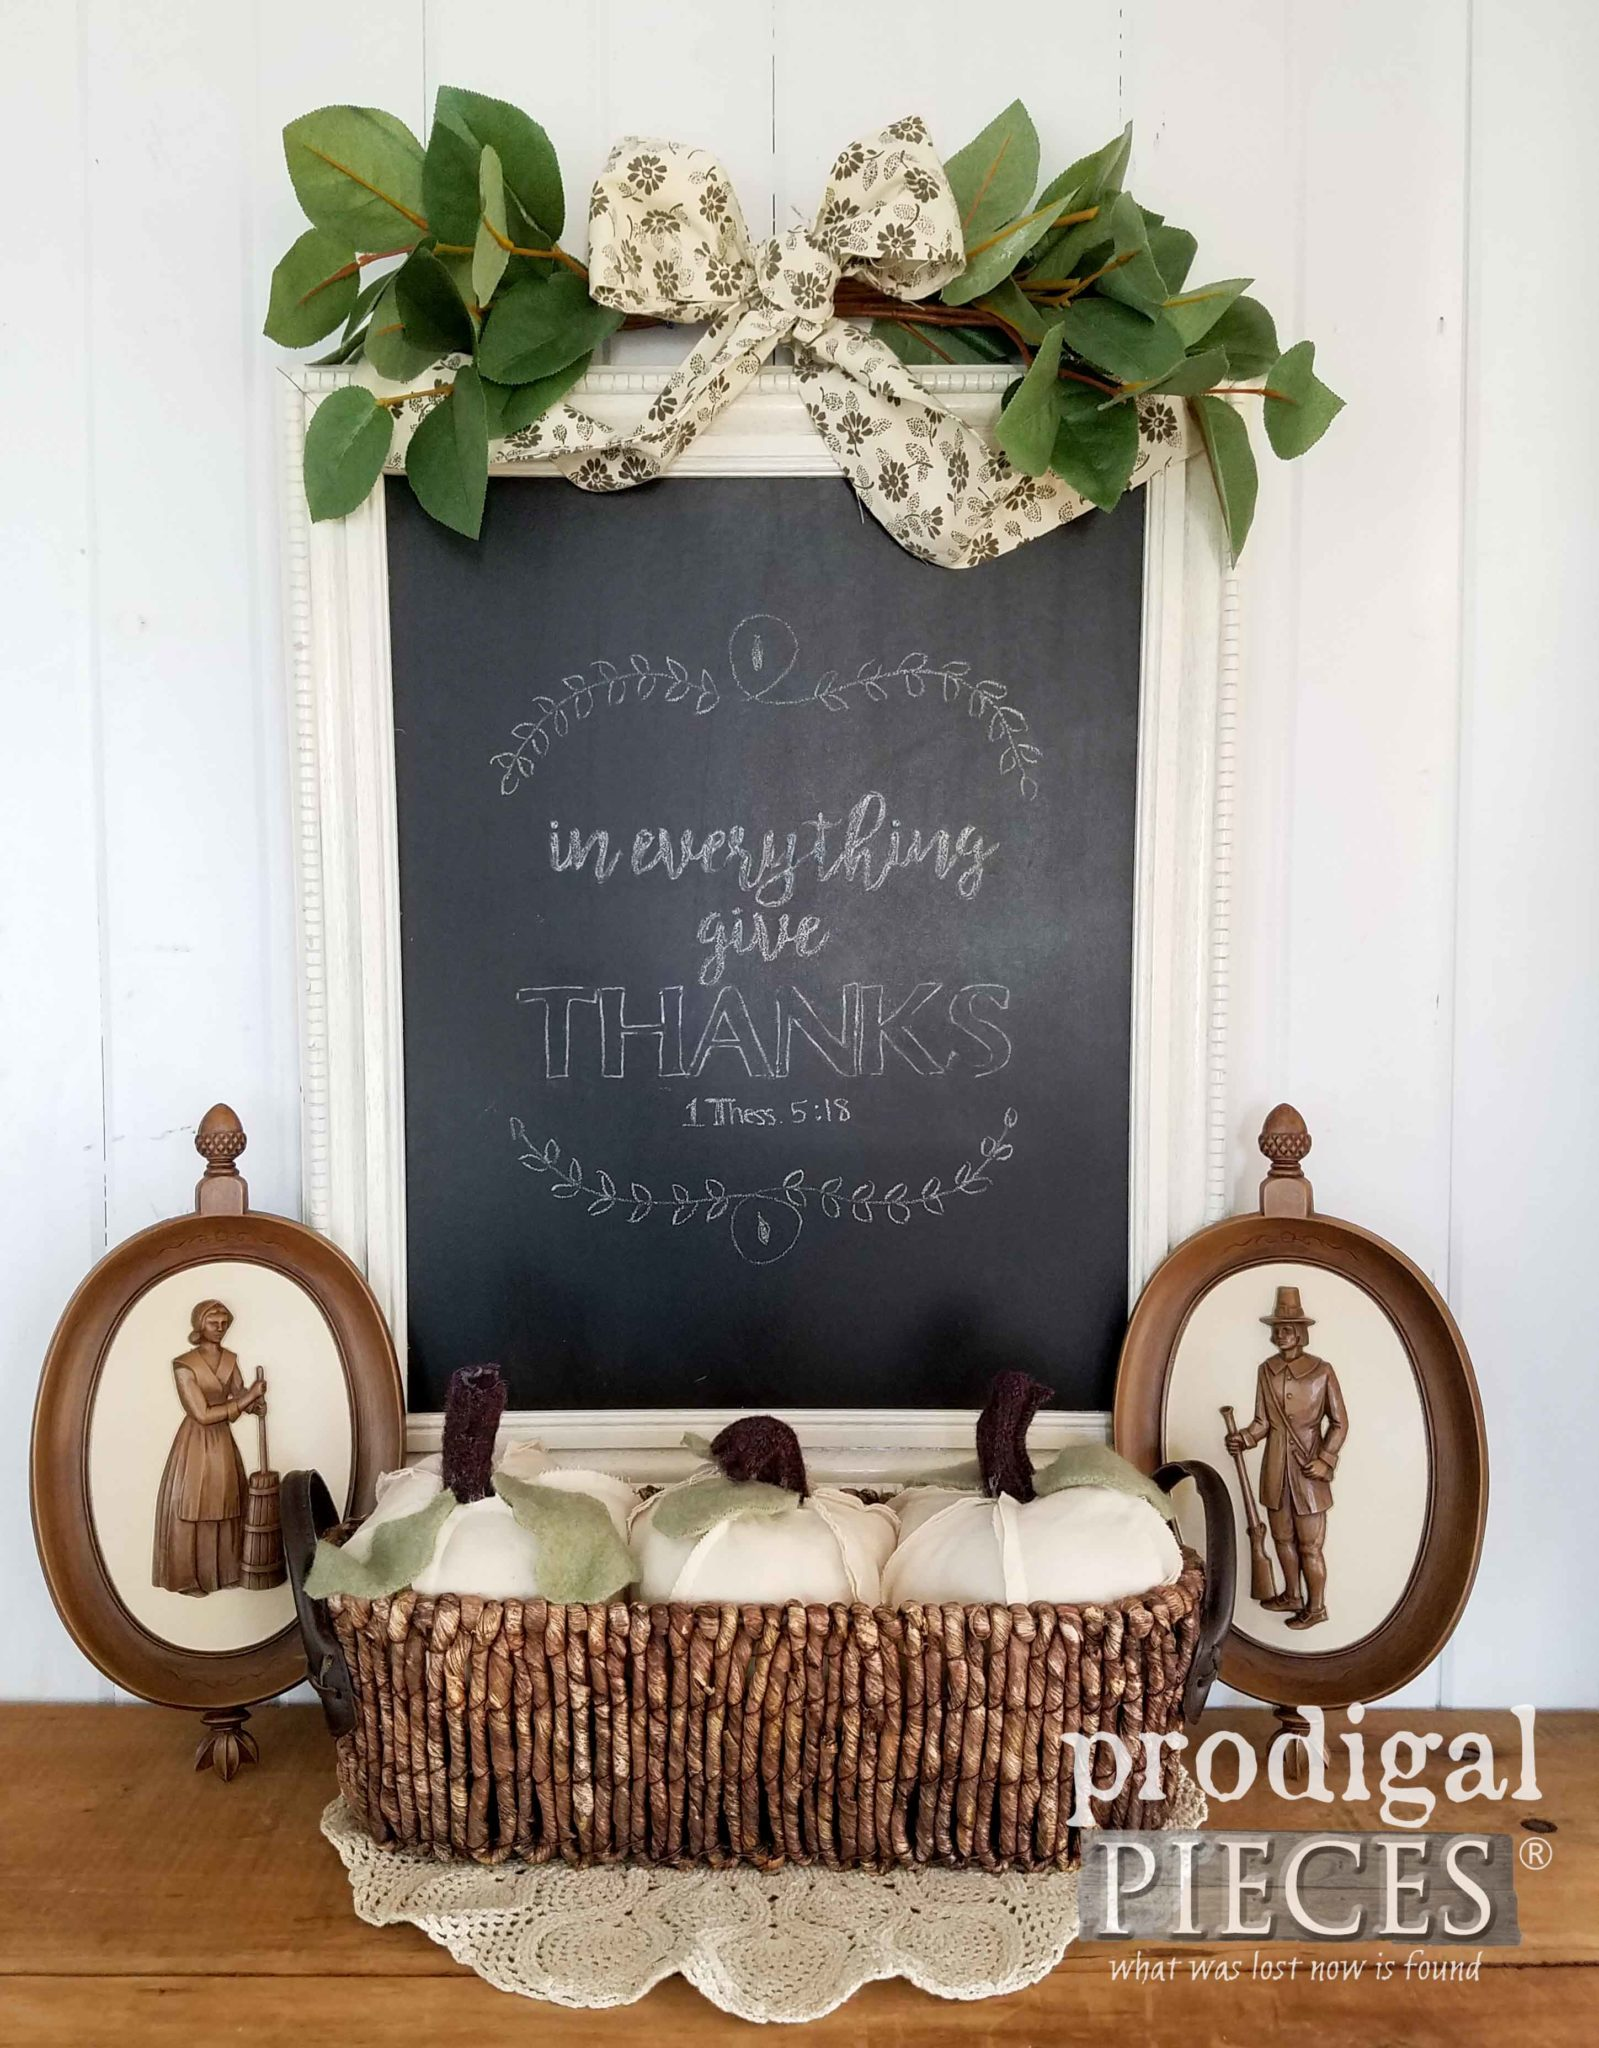 DIY Thrifted Thanksgiving Vignette with Chalkboard. Perfect for Last-Minute Decor | by Prodigal Pieces | prodigalpieces.com